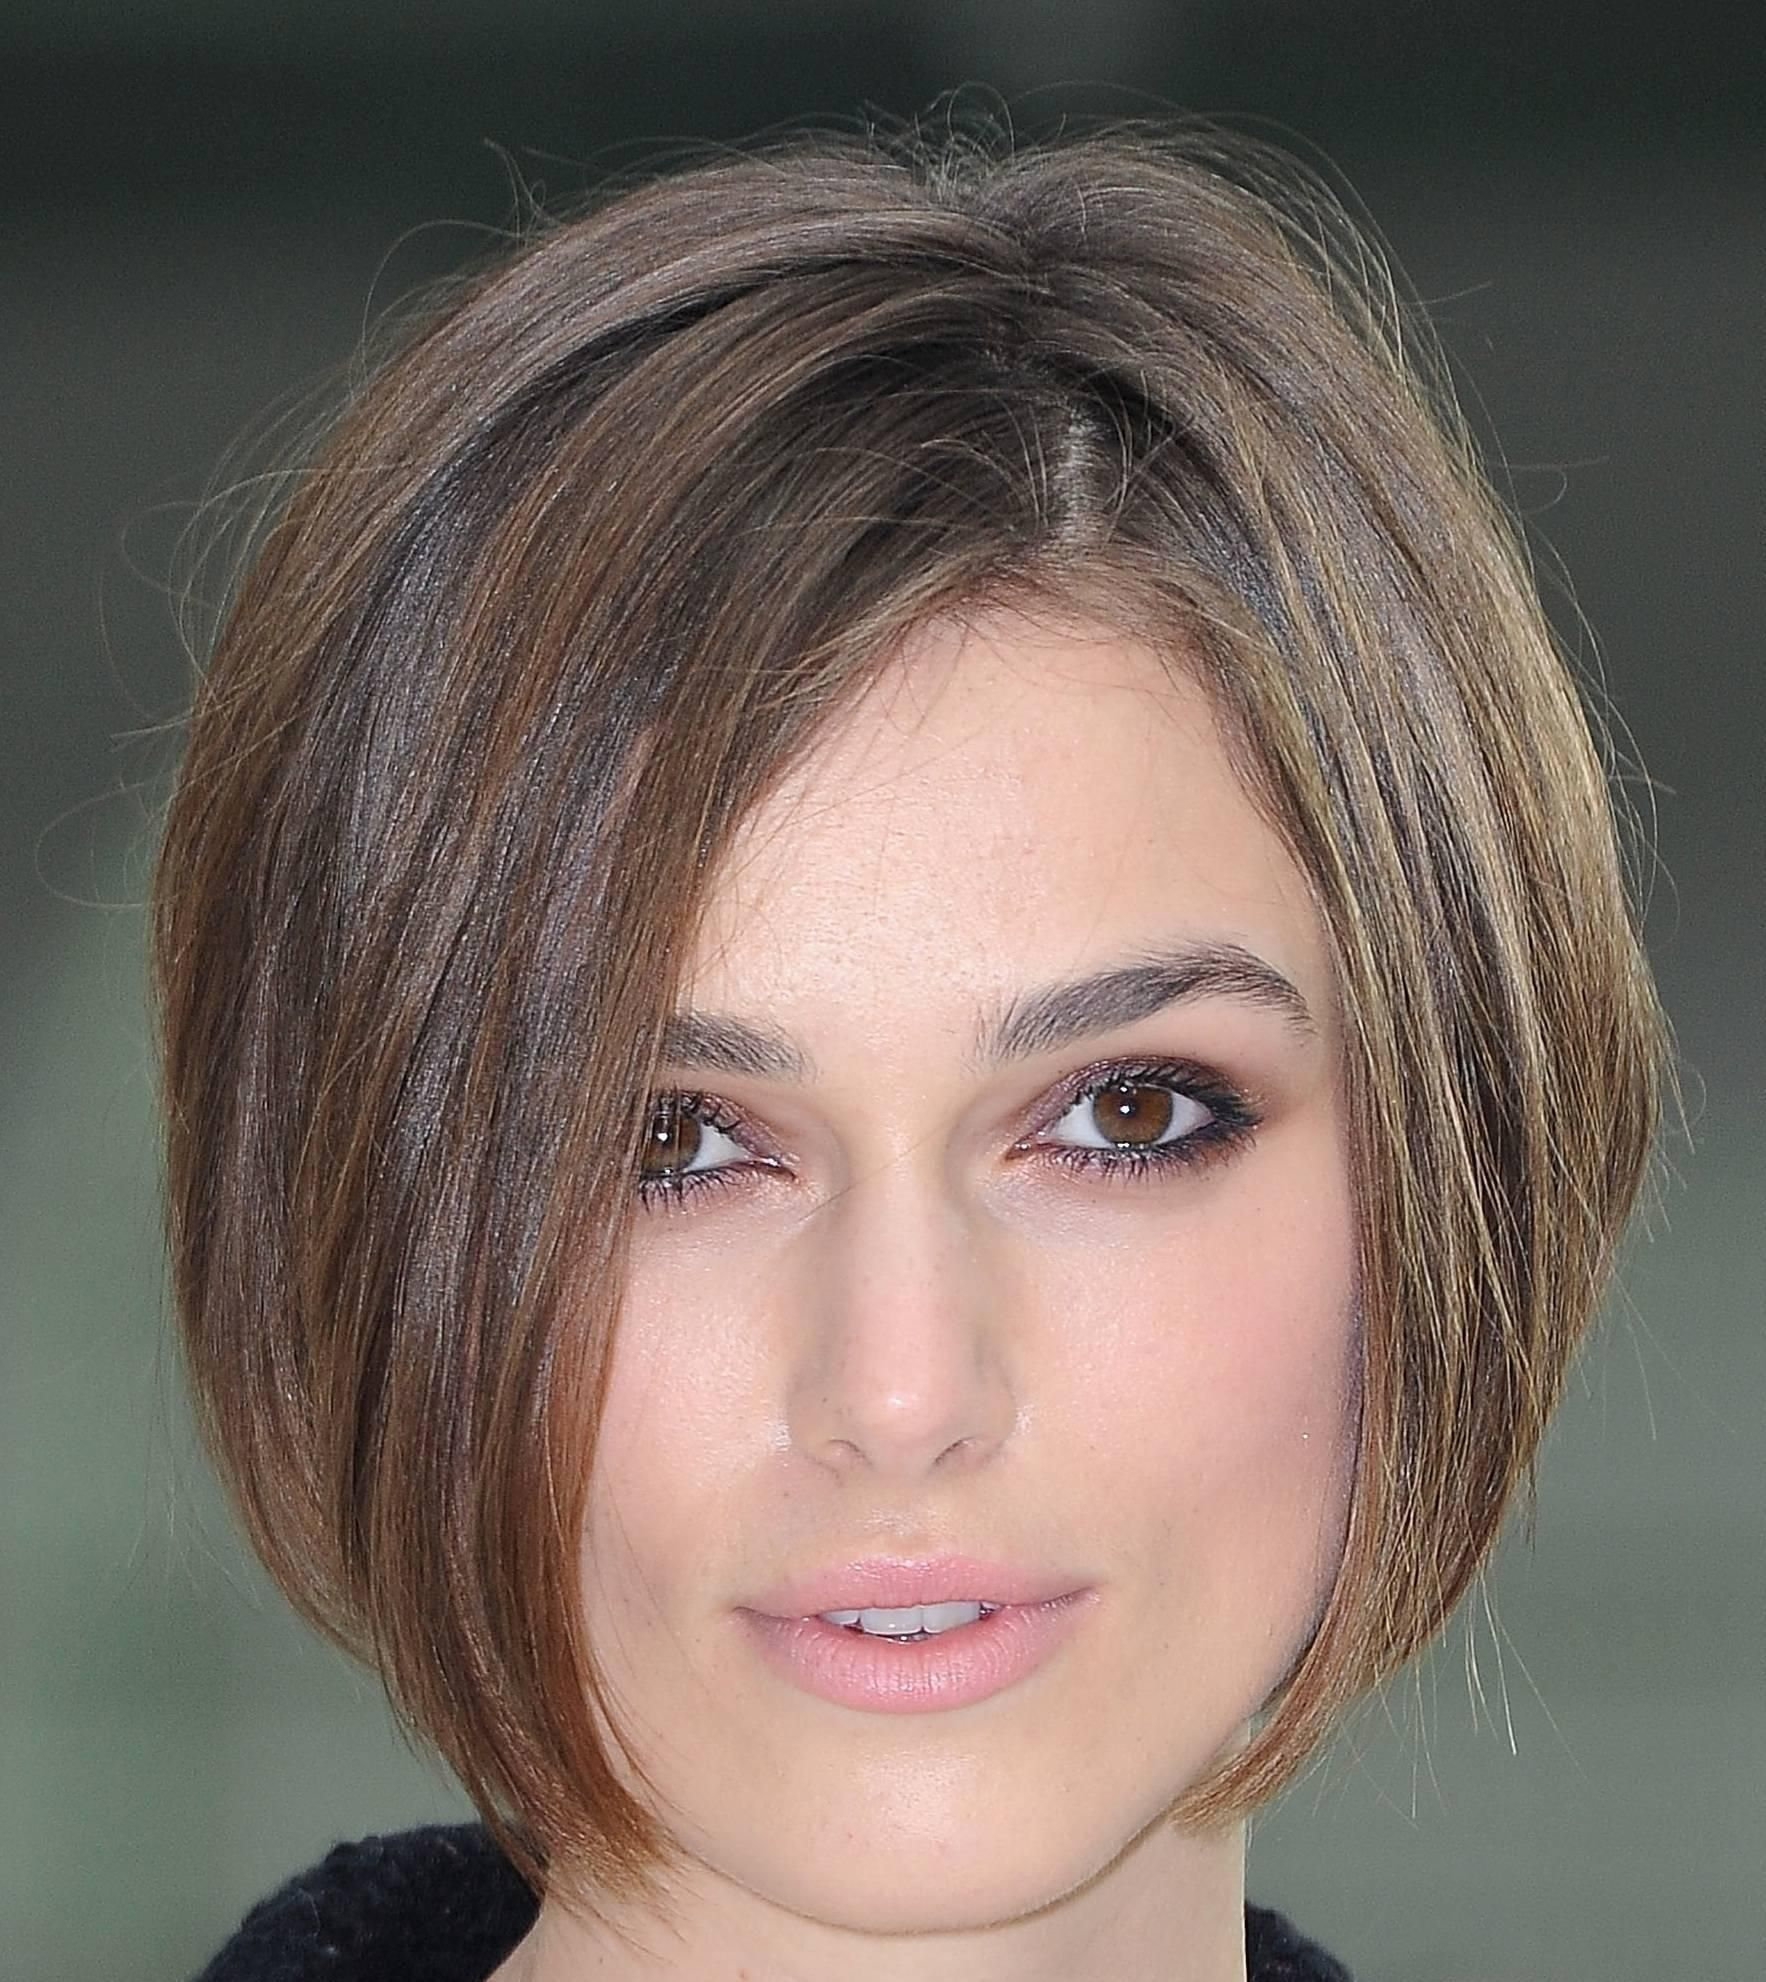 Hairstyles For Fine Thin Hair For Short Hairstyles For Women Over 50 F Short Hair Styles For Round Faces Bob Haircut For Fine Hair Bob Hairstyles For Fine Hair